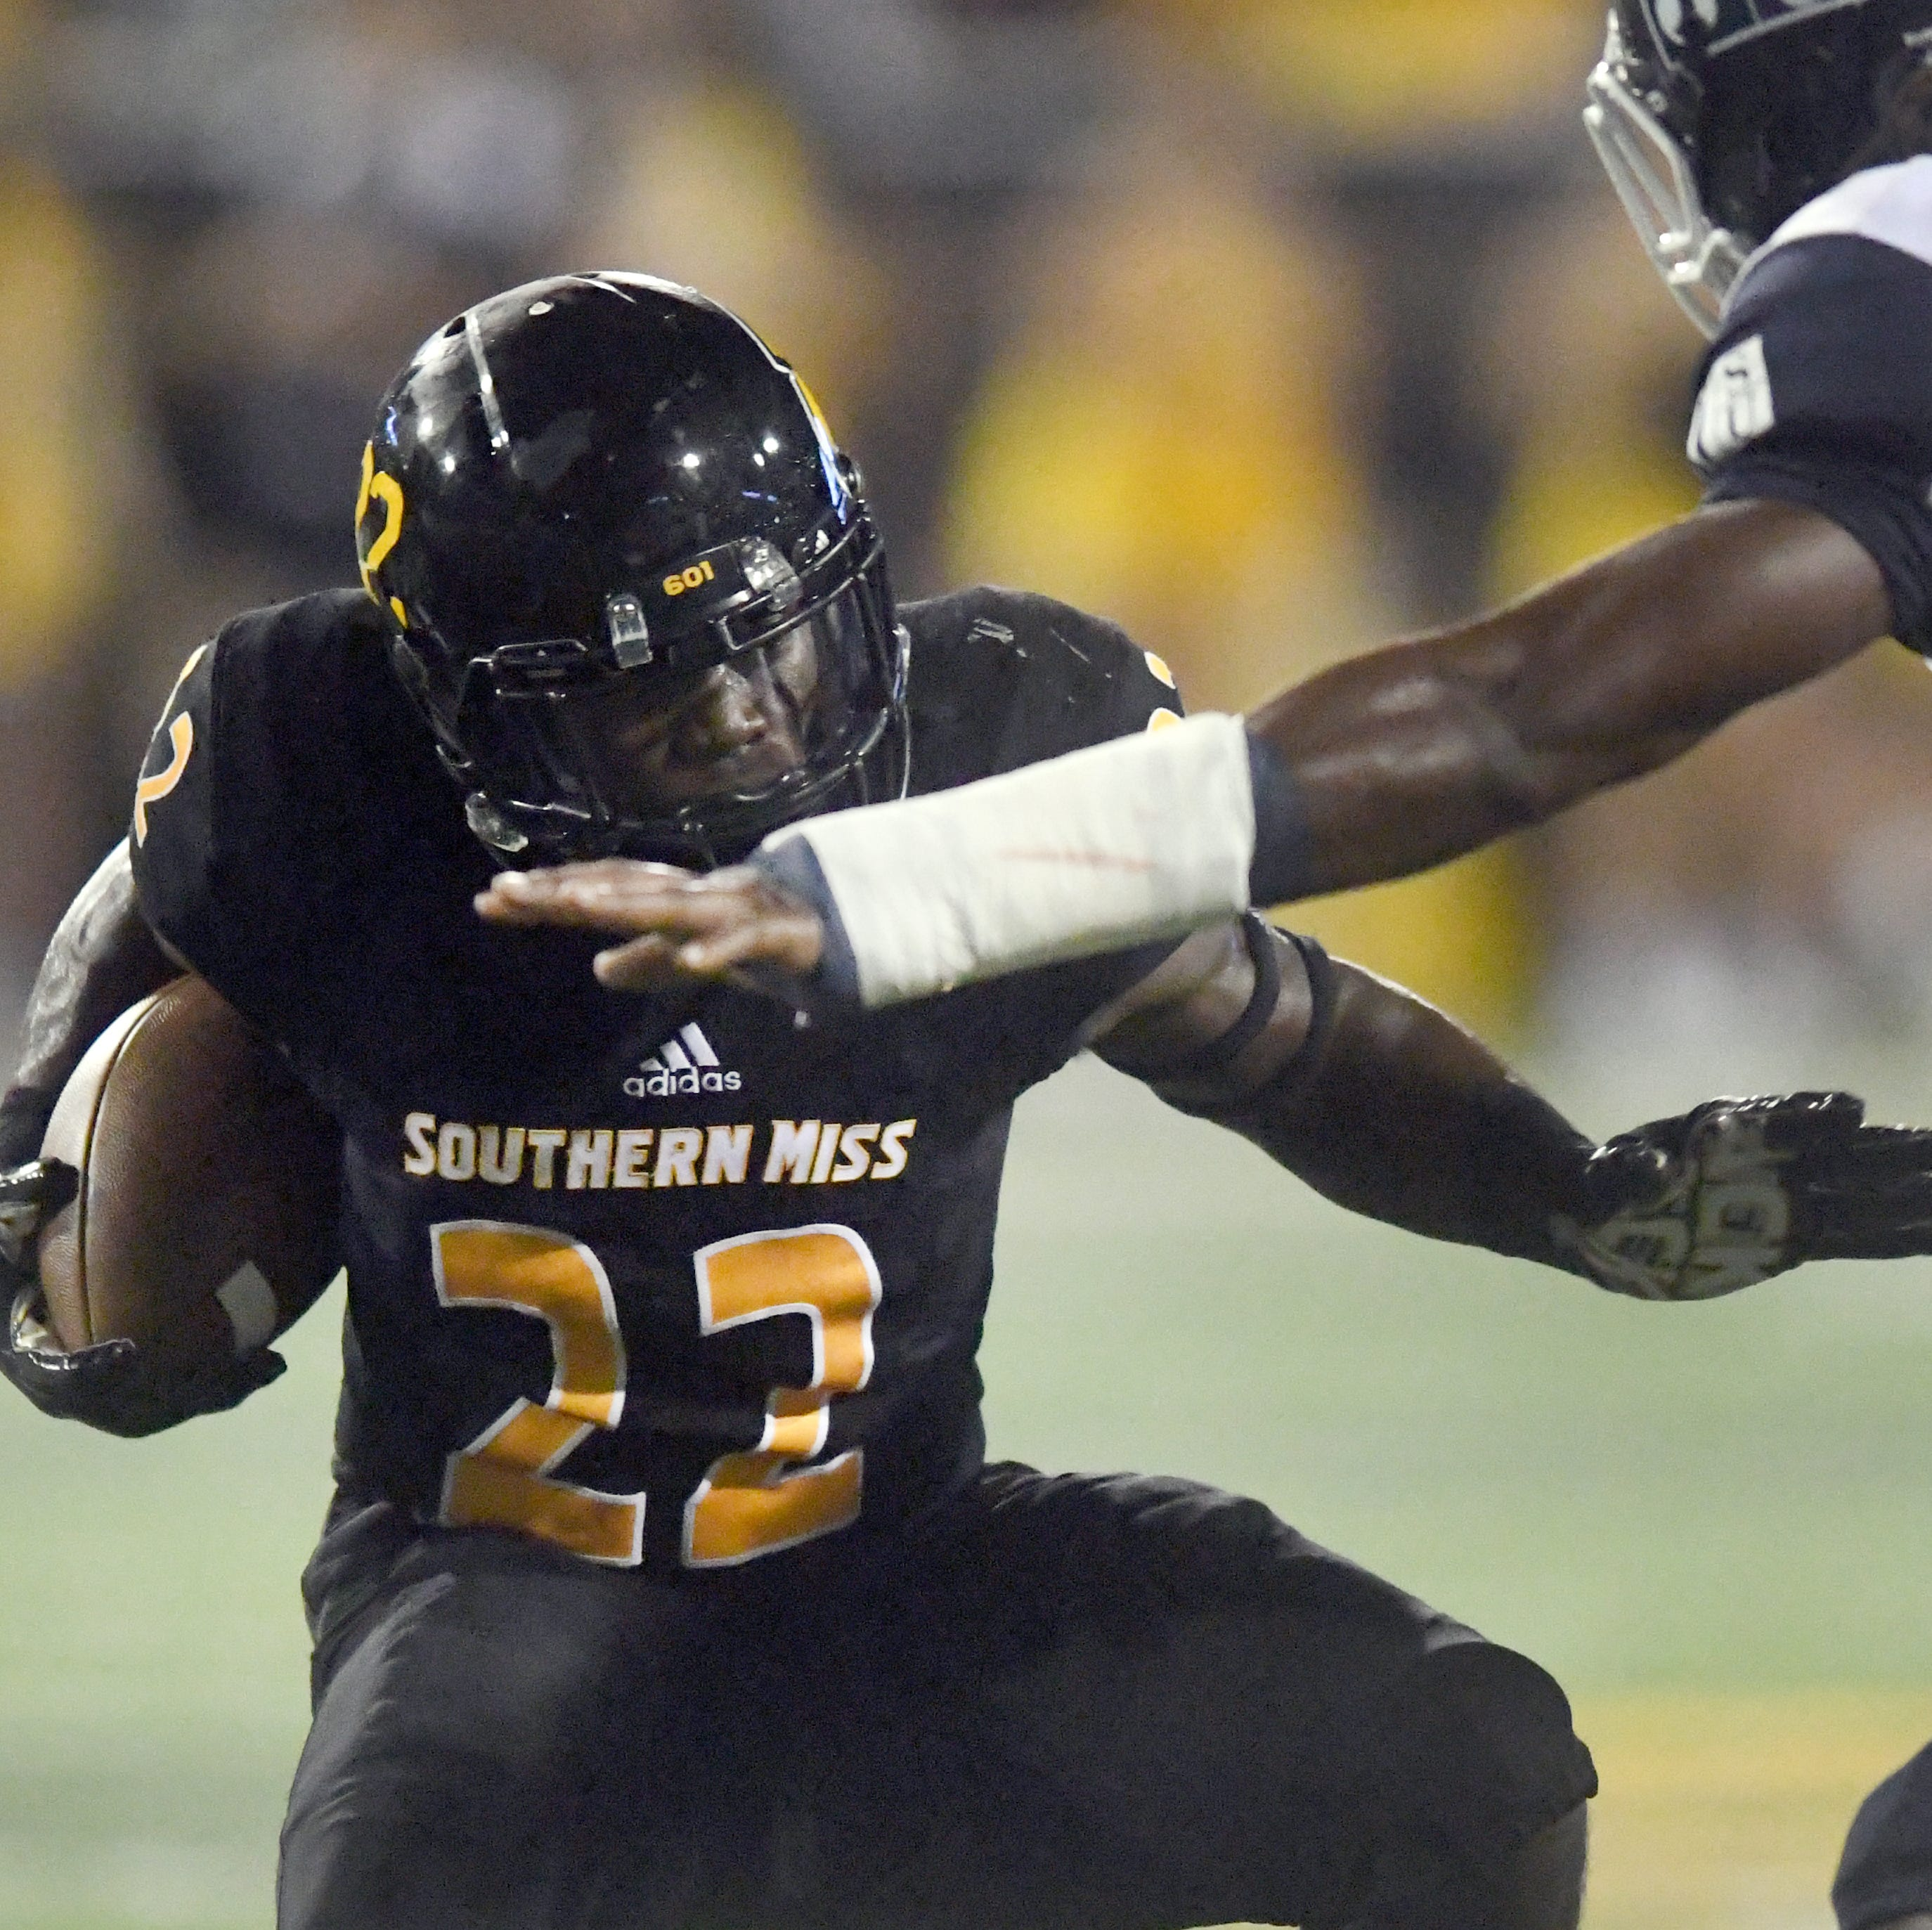 Southern Miss coaches break down thoughts on how to handle NCAA redshirt rule change